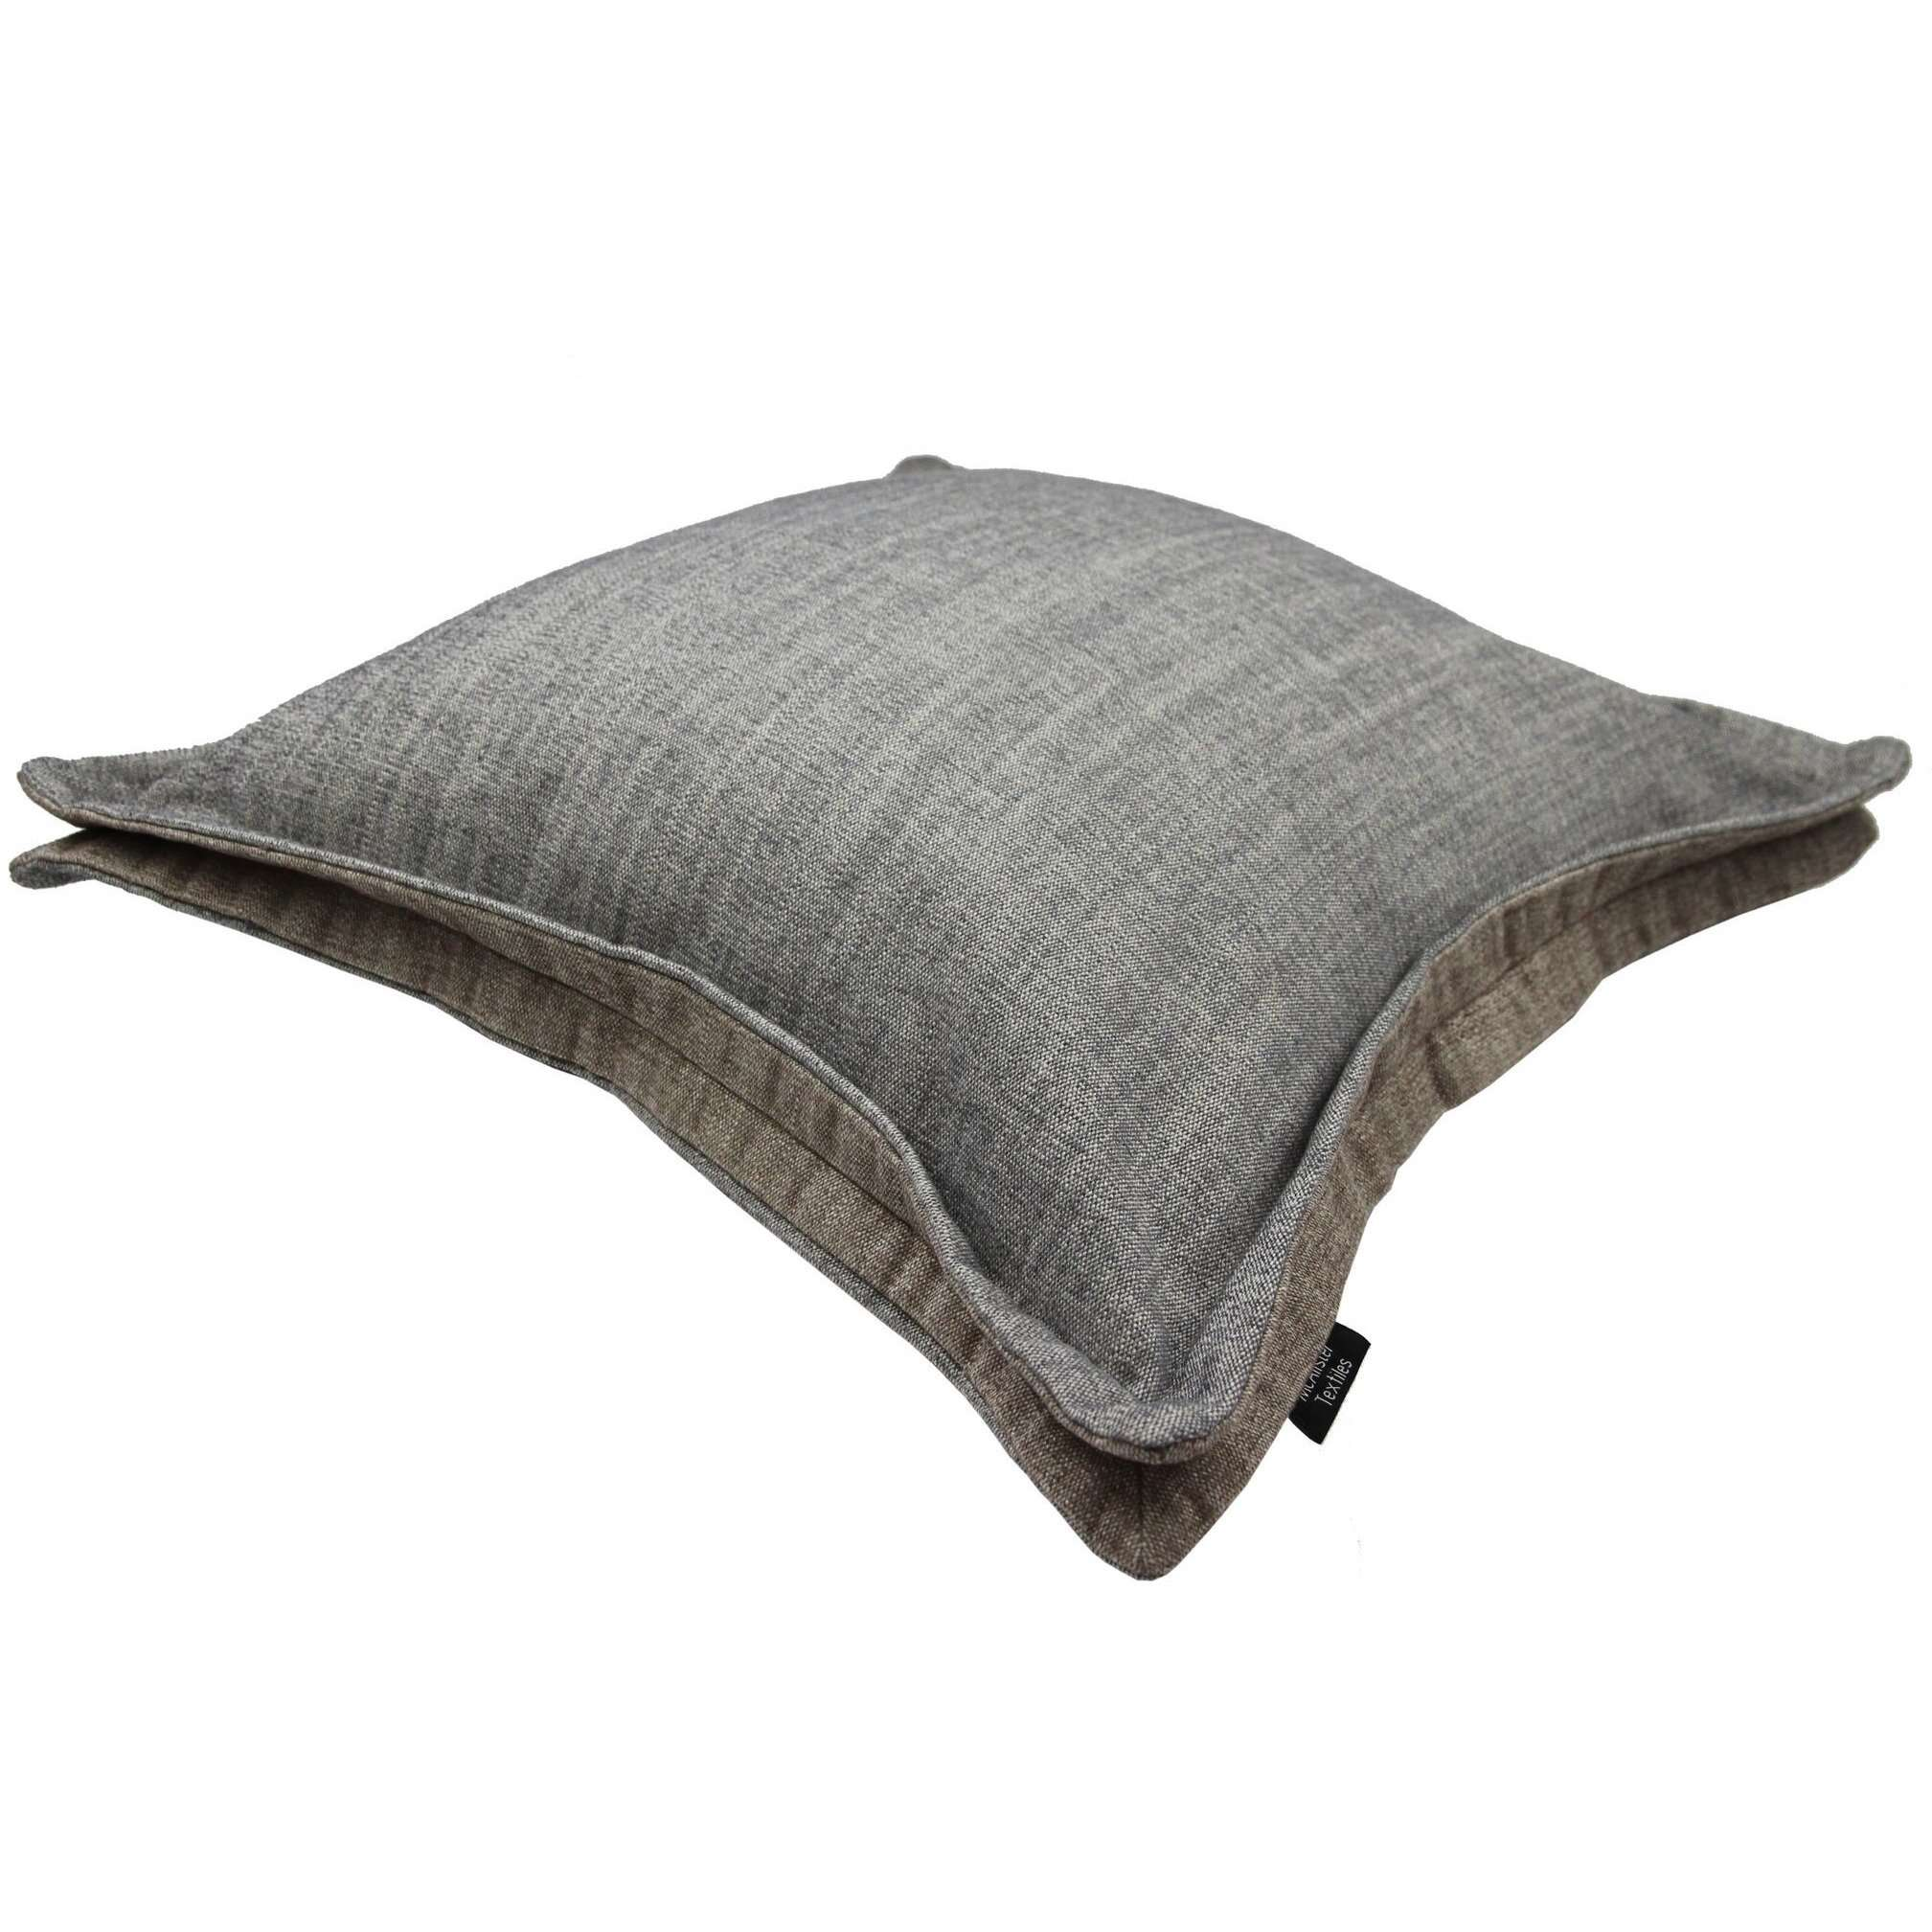 McAlister Textiles Rhumba Accent Grey + Taupe Beige Cushion Cushions and Covers